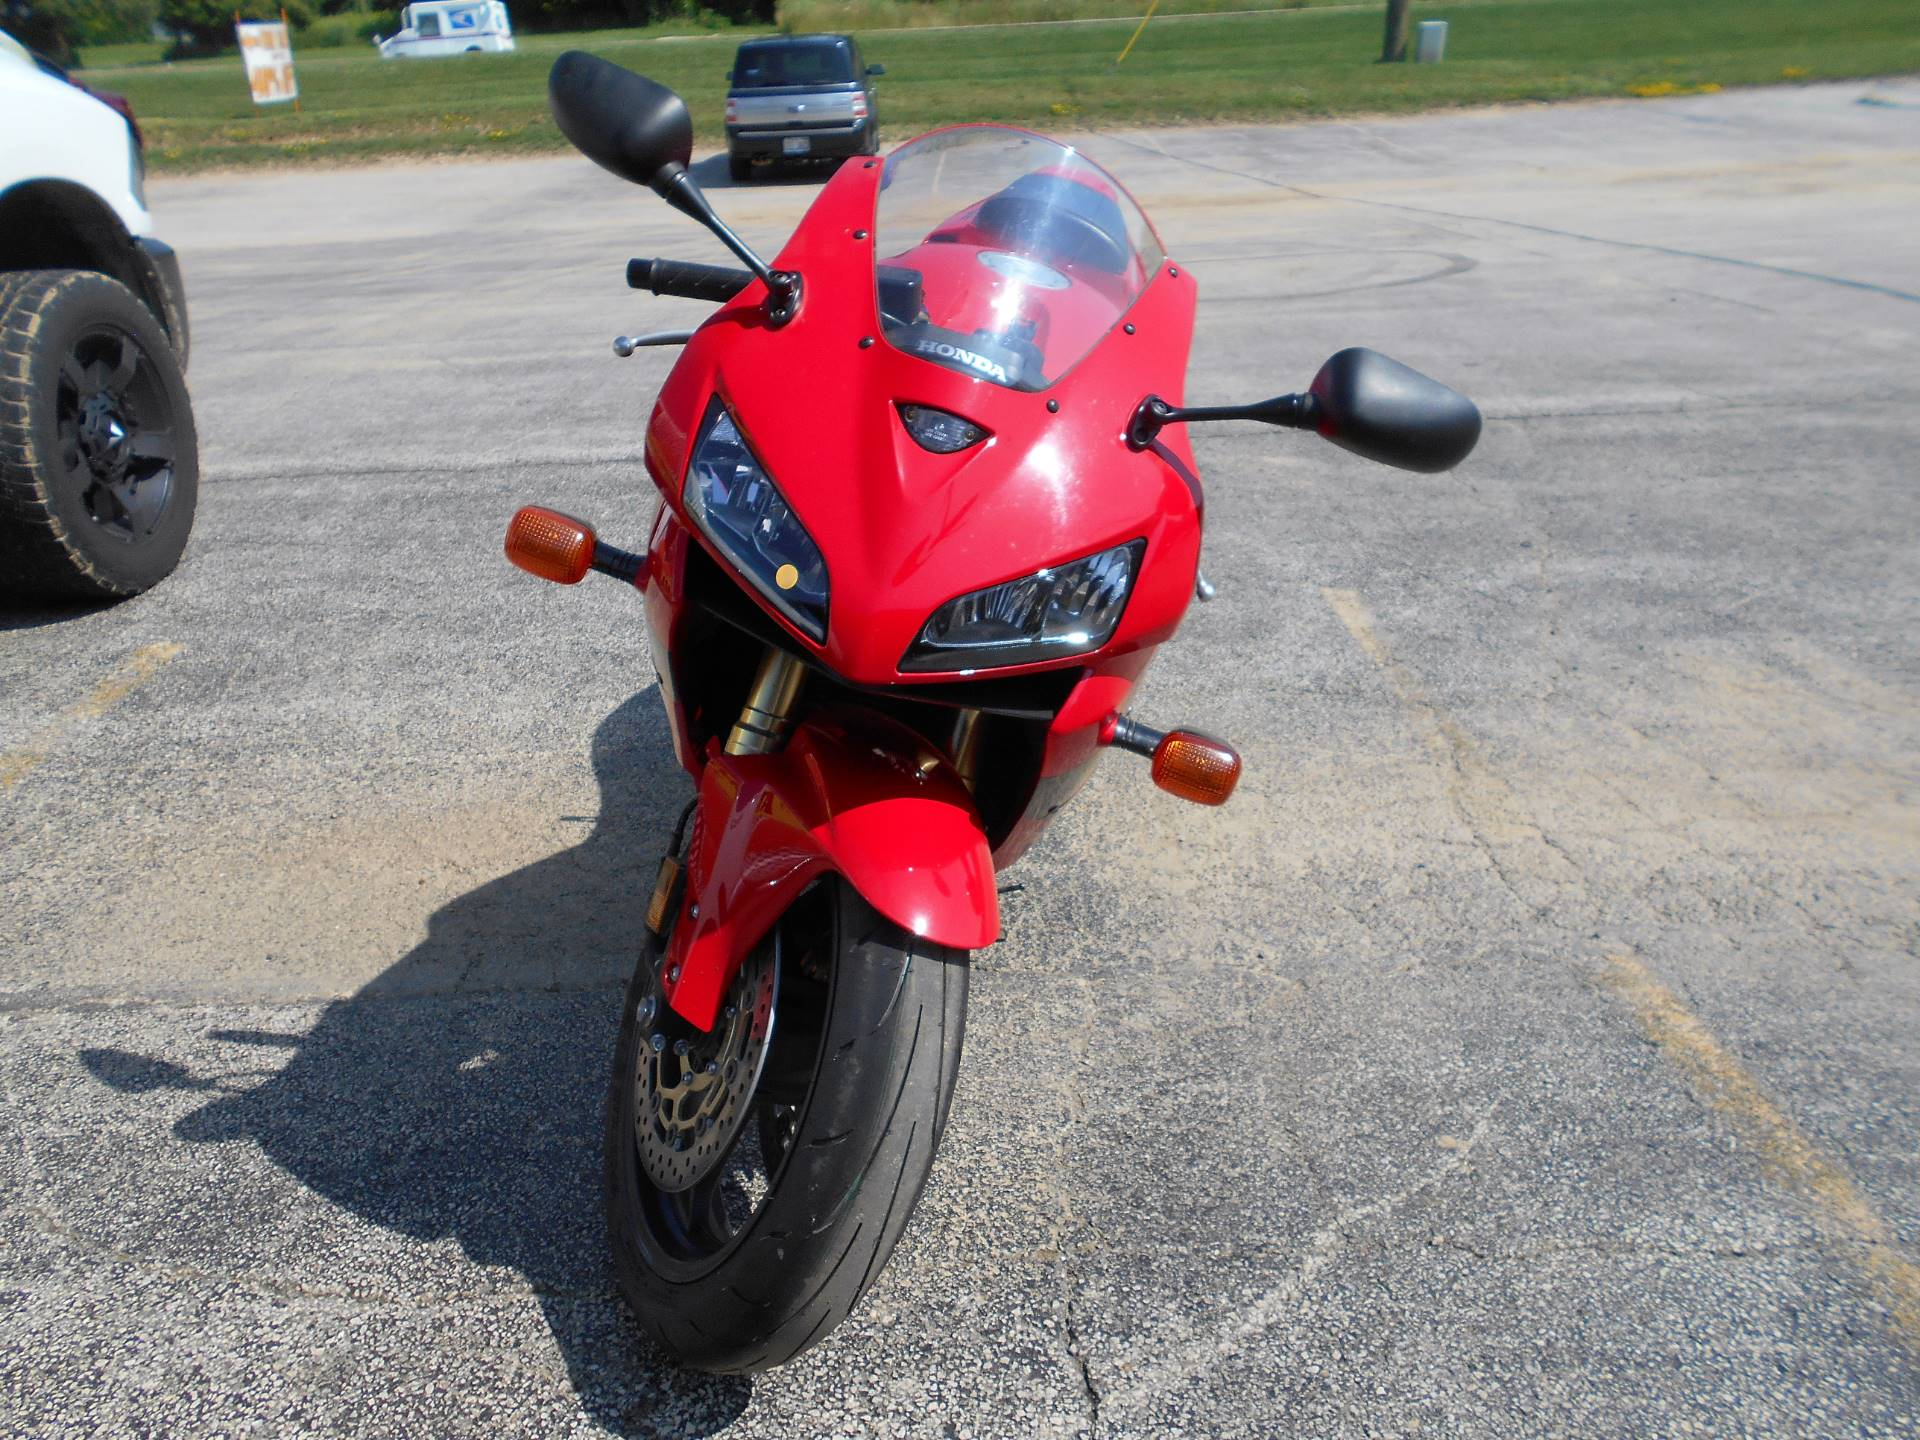 Used 2006 Honda Cbr600rr Motorcycles In Belvidere Il